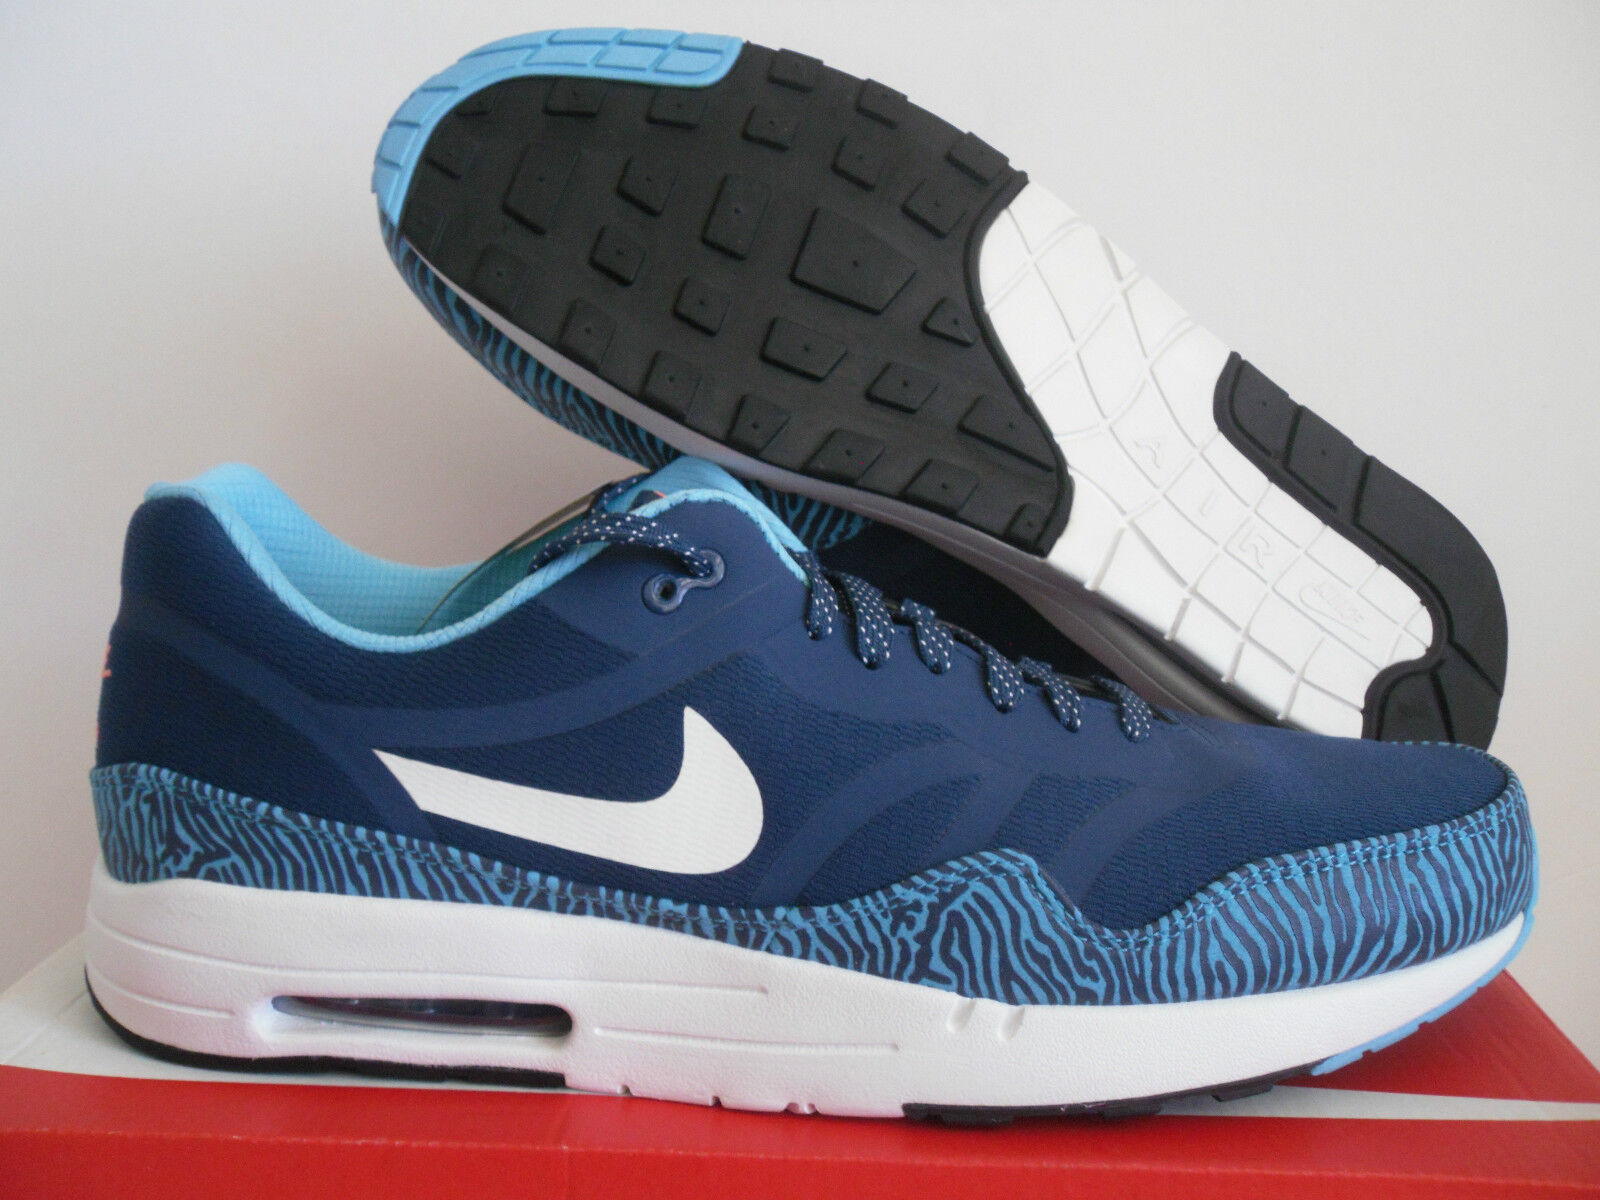 MENS NIKE AIR MAX 1 PREMIUM TAPE BLUE-WHITE-BLACK SZ 13 [599514-410]